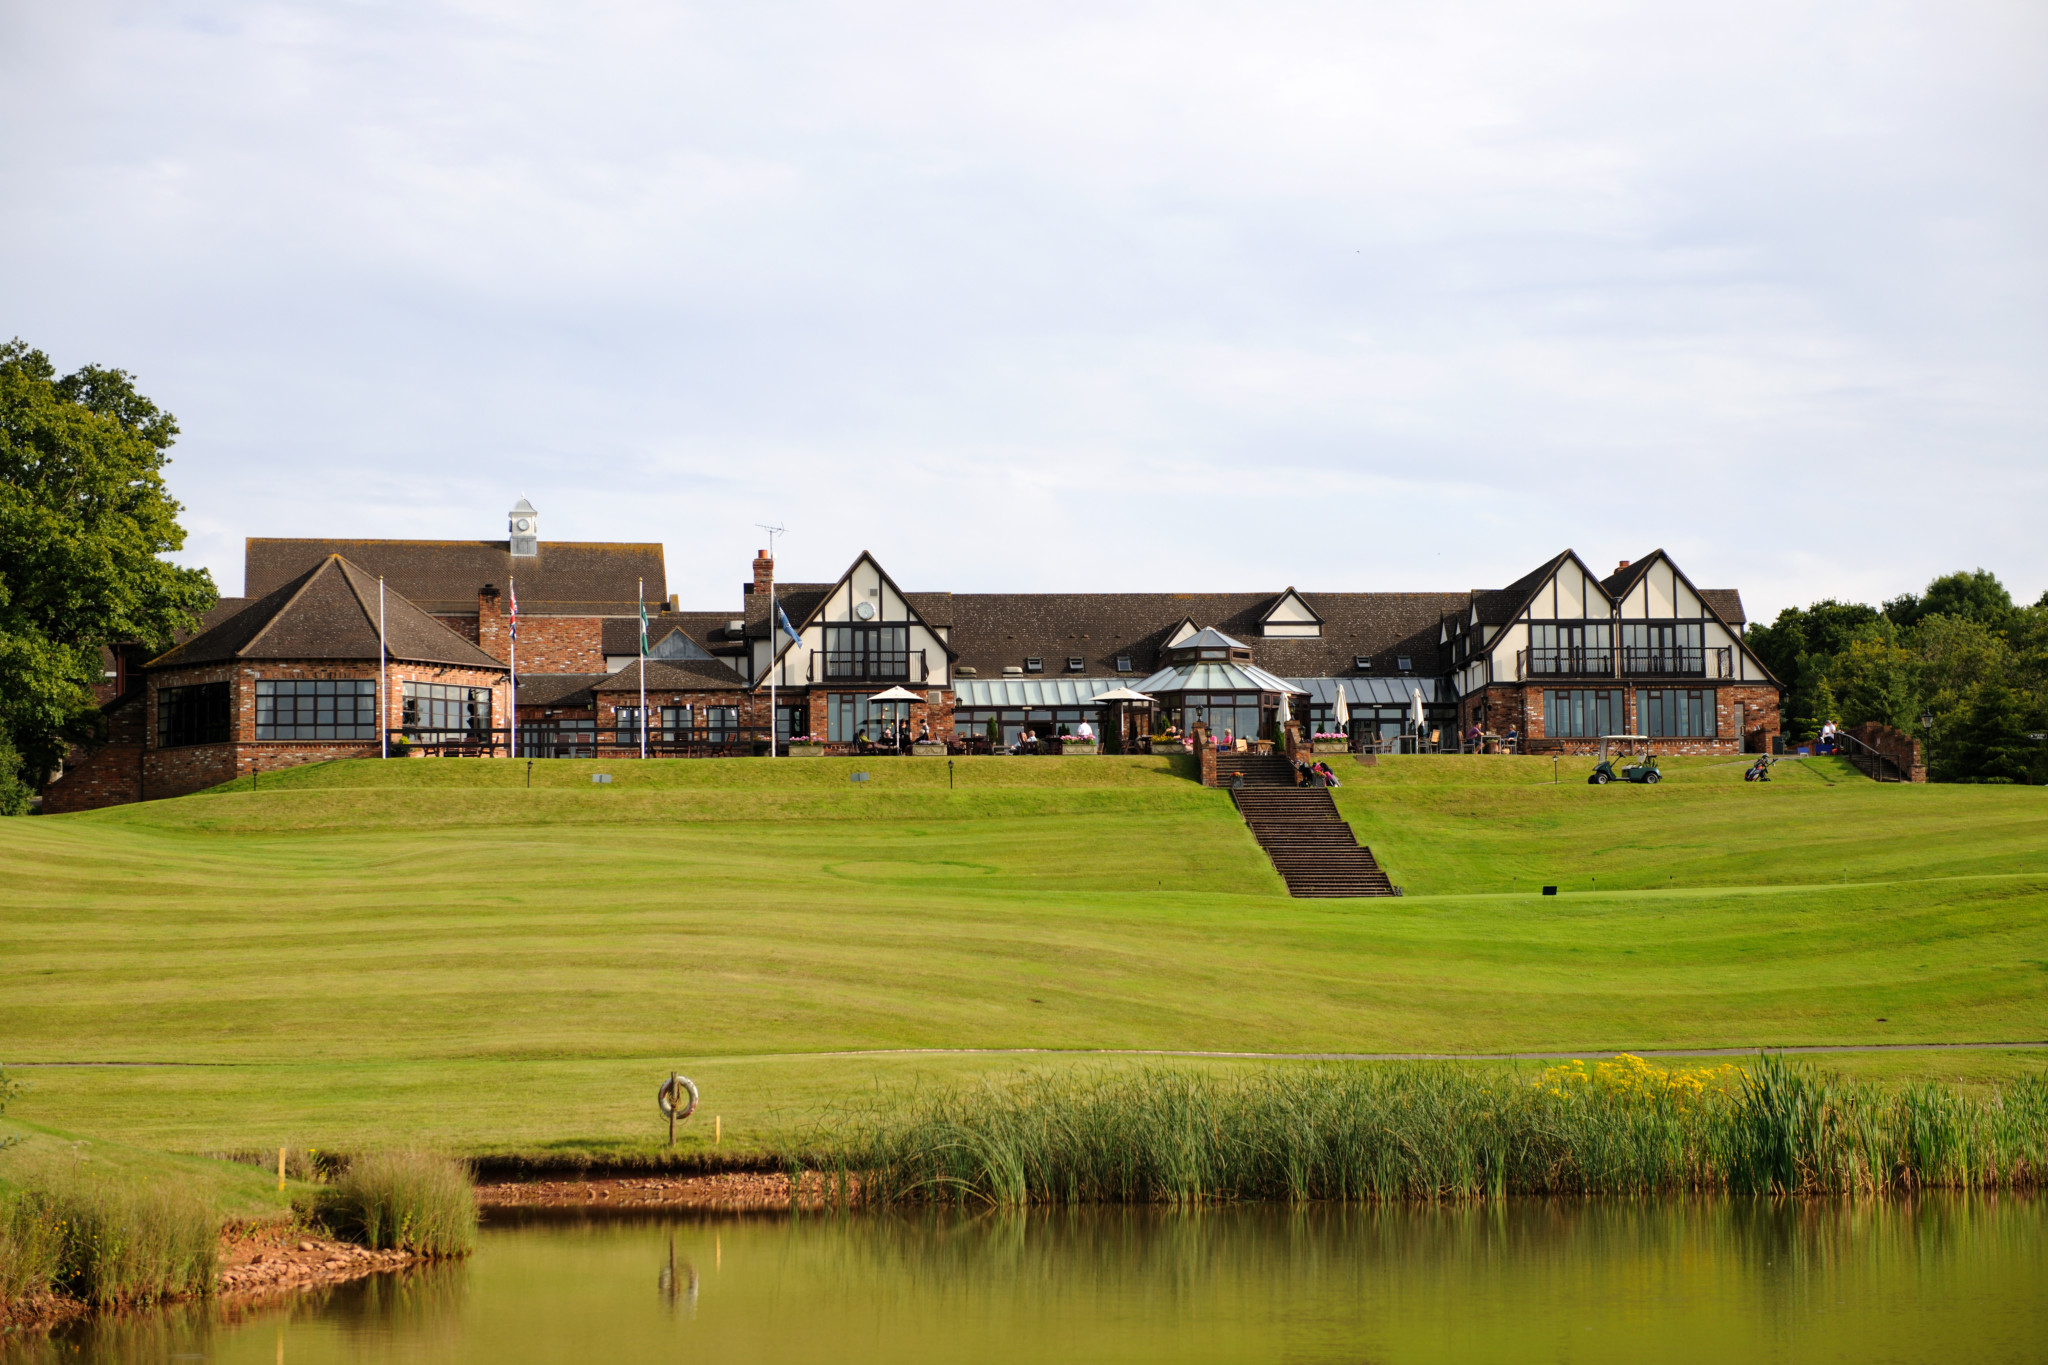 woodbury-park-hotel-and-golf-course